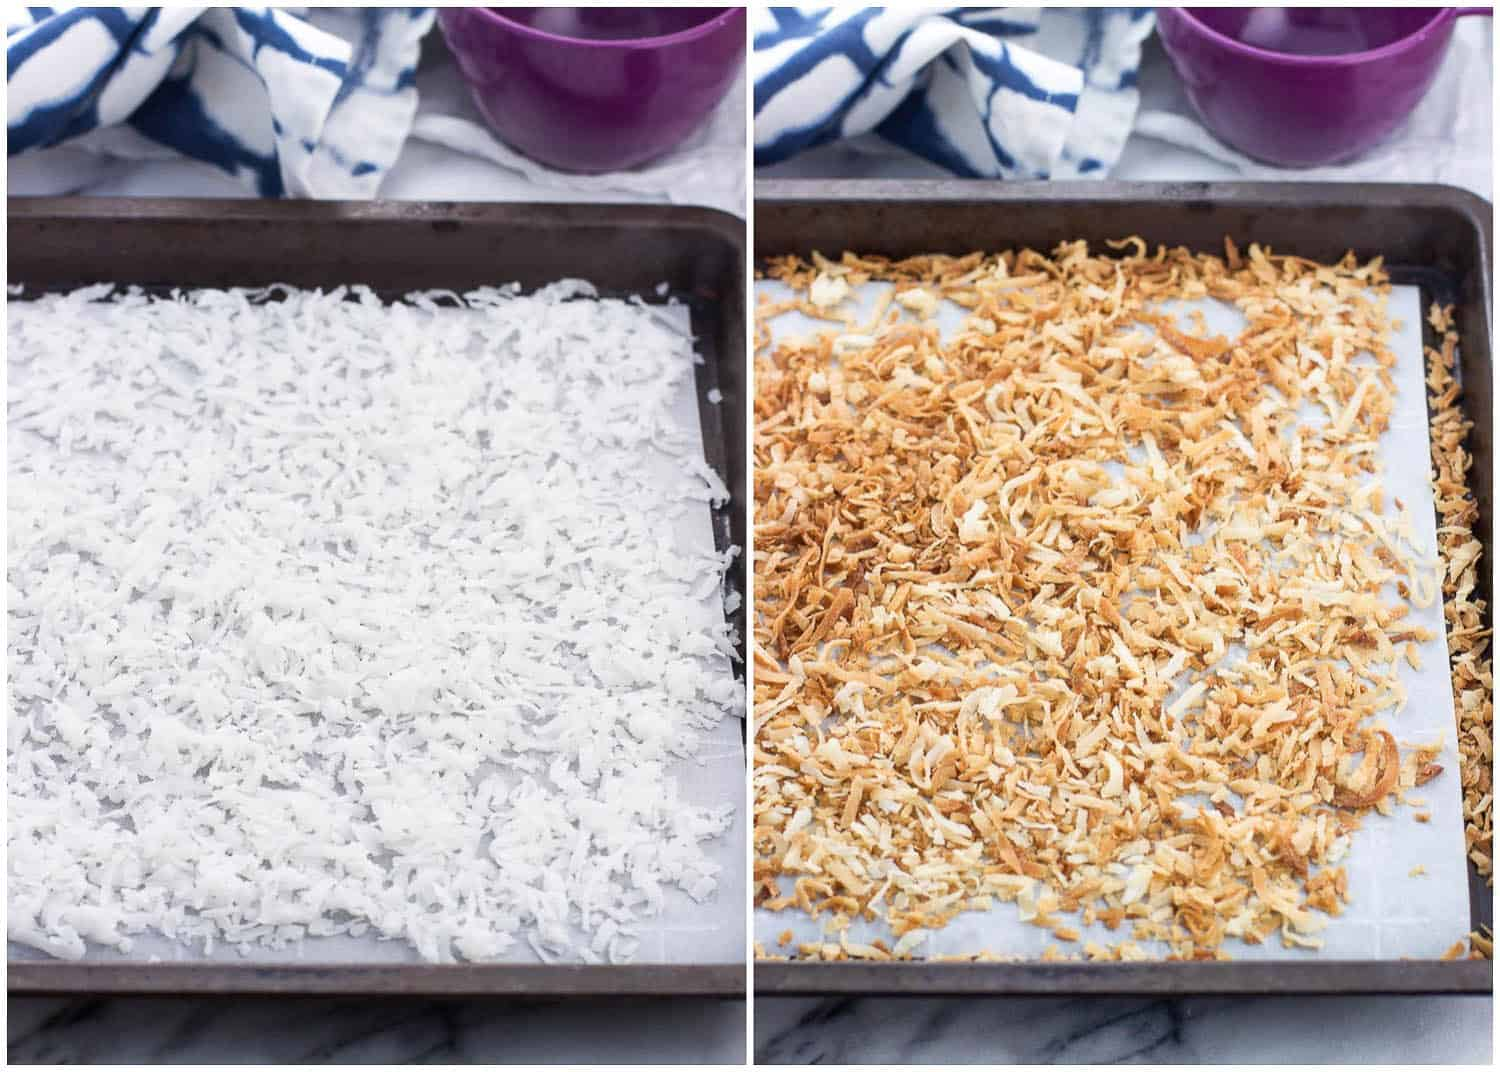 Learn how to toast coconut in the oven or on the stovetop with these easy methods. Toasted coconut elevates any coconut dessert with only a few minutes of work!